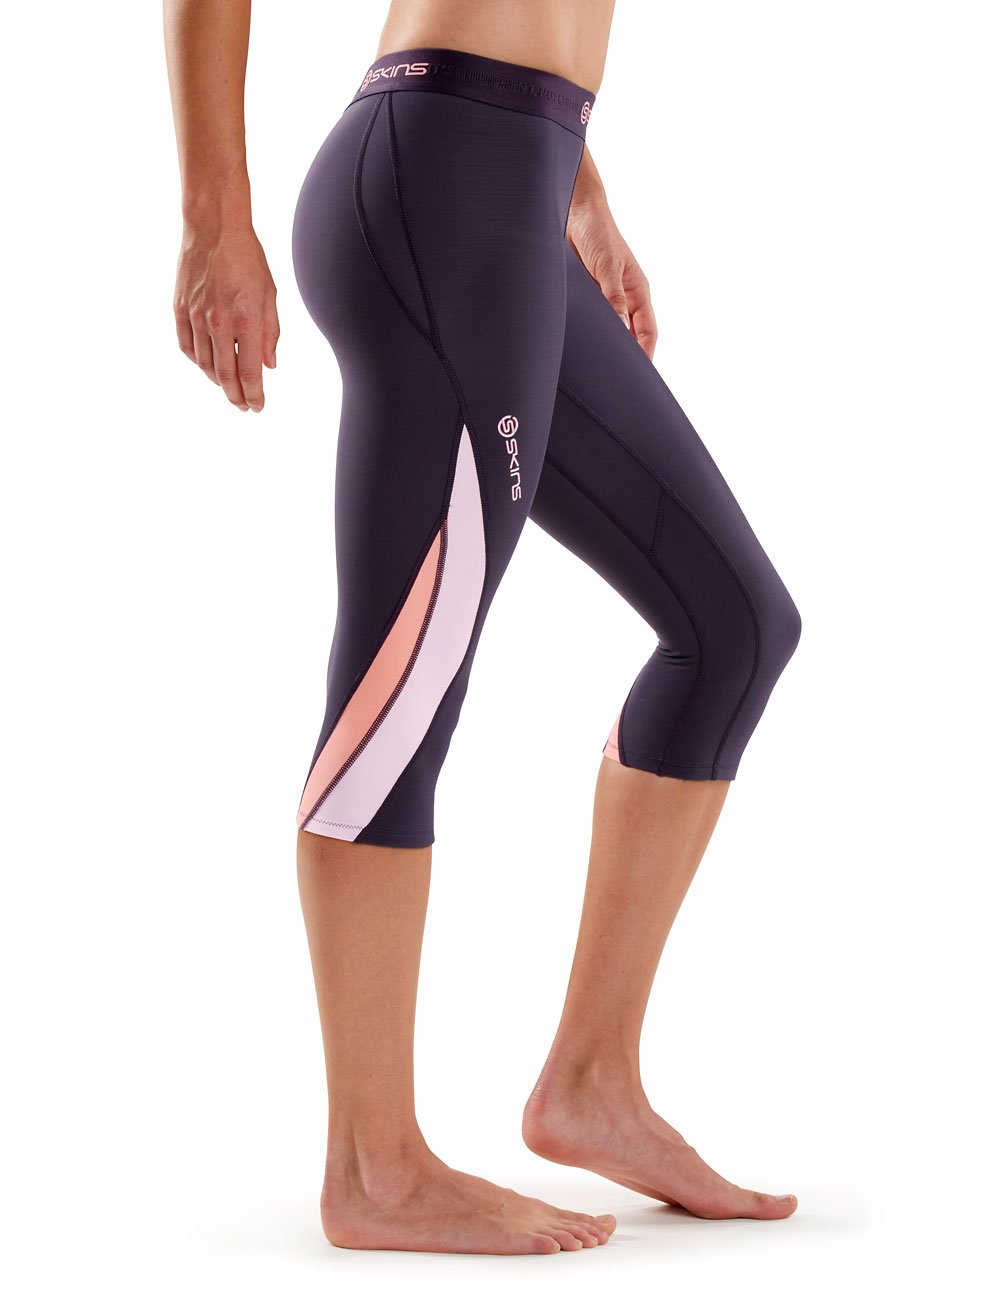 Skins Womens DNAmic Thermal 3//4 Capri Compression Tights Skins North America DT00020080-P